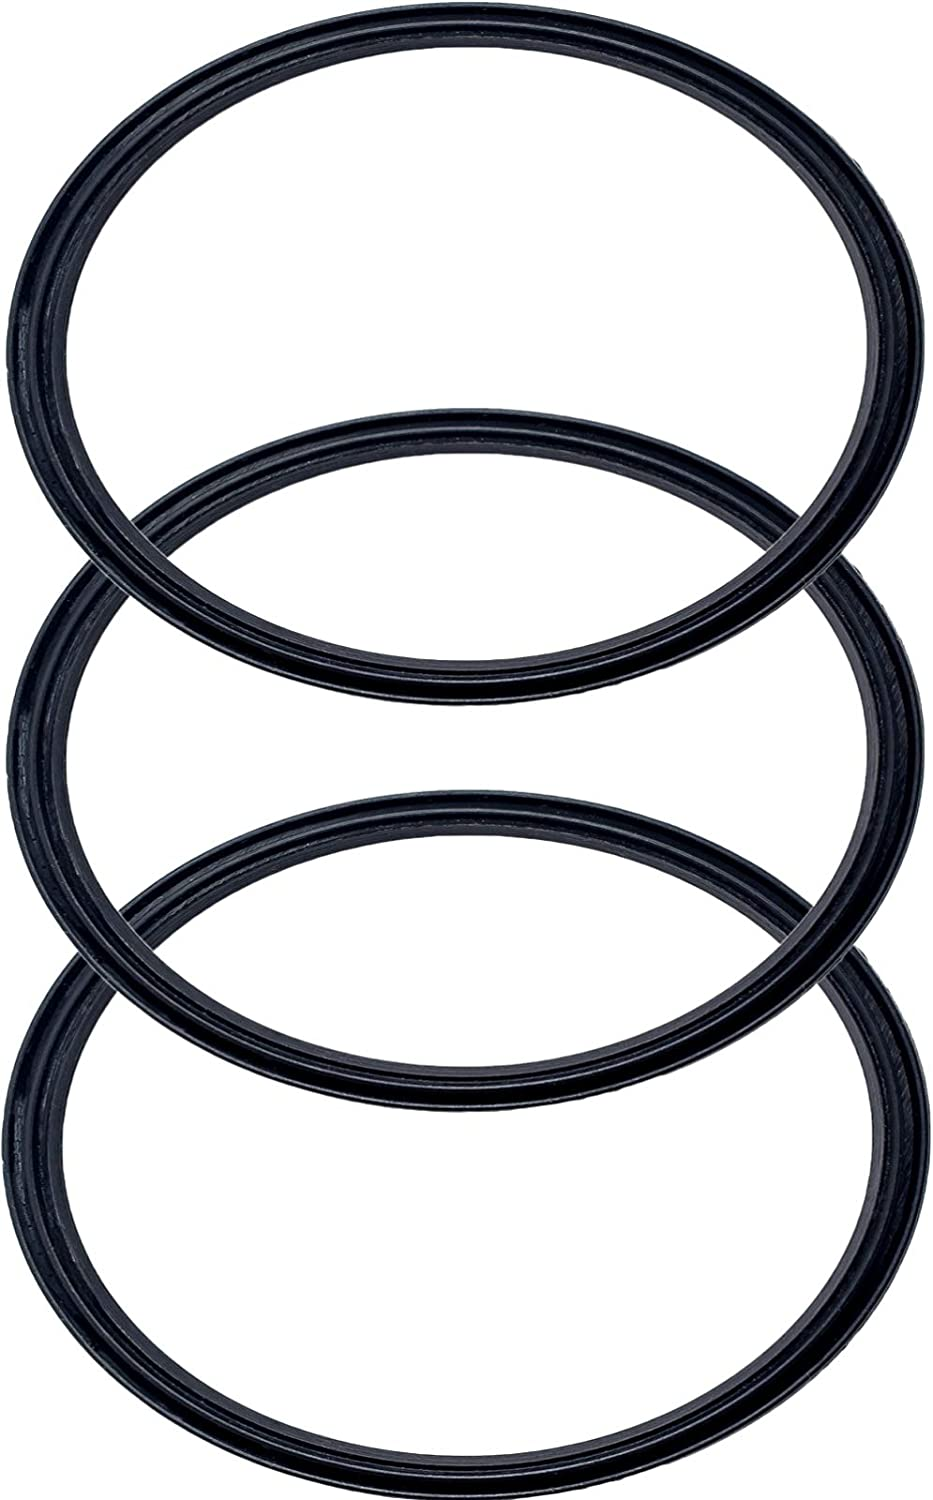 Pack of 3-30 oz Replacement Rubber Lid Ring, Gasket Seals, Lid for Insulated Stainless Steel Tumblers, Cups Vacuum Effect, fit for Brands - Yeti, Ozark Trail, Beast, Black by C&Berg Model 2020